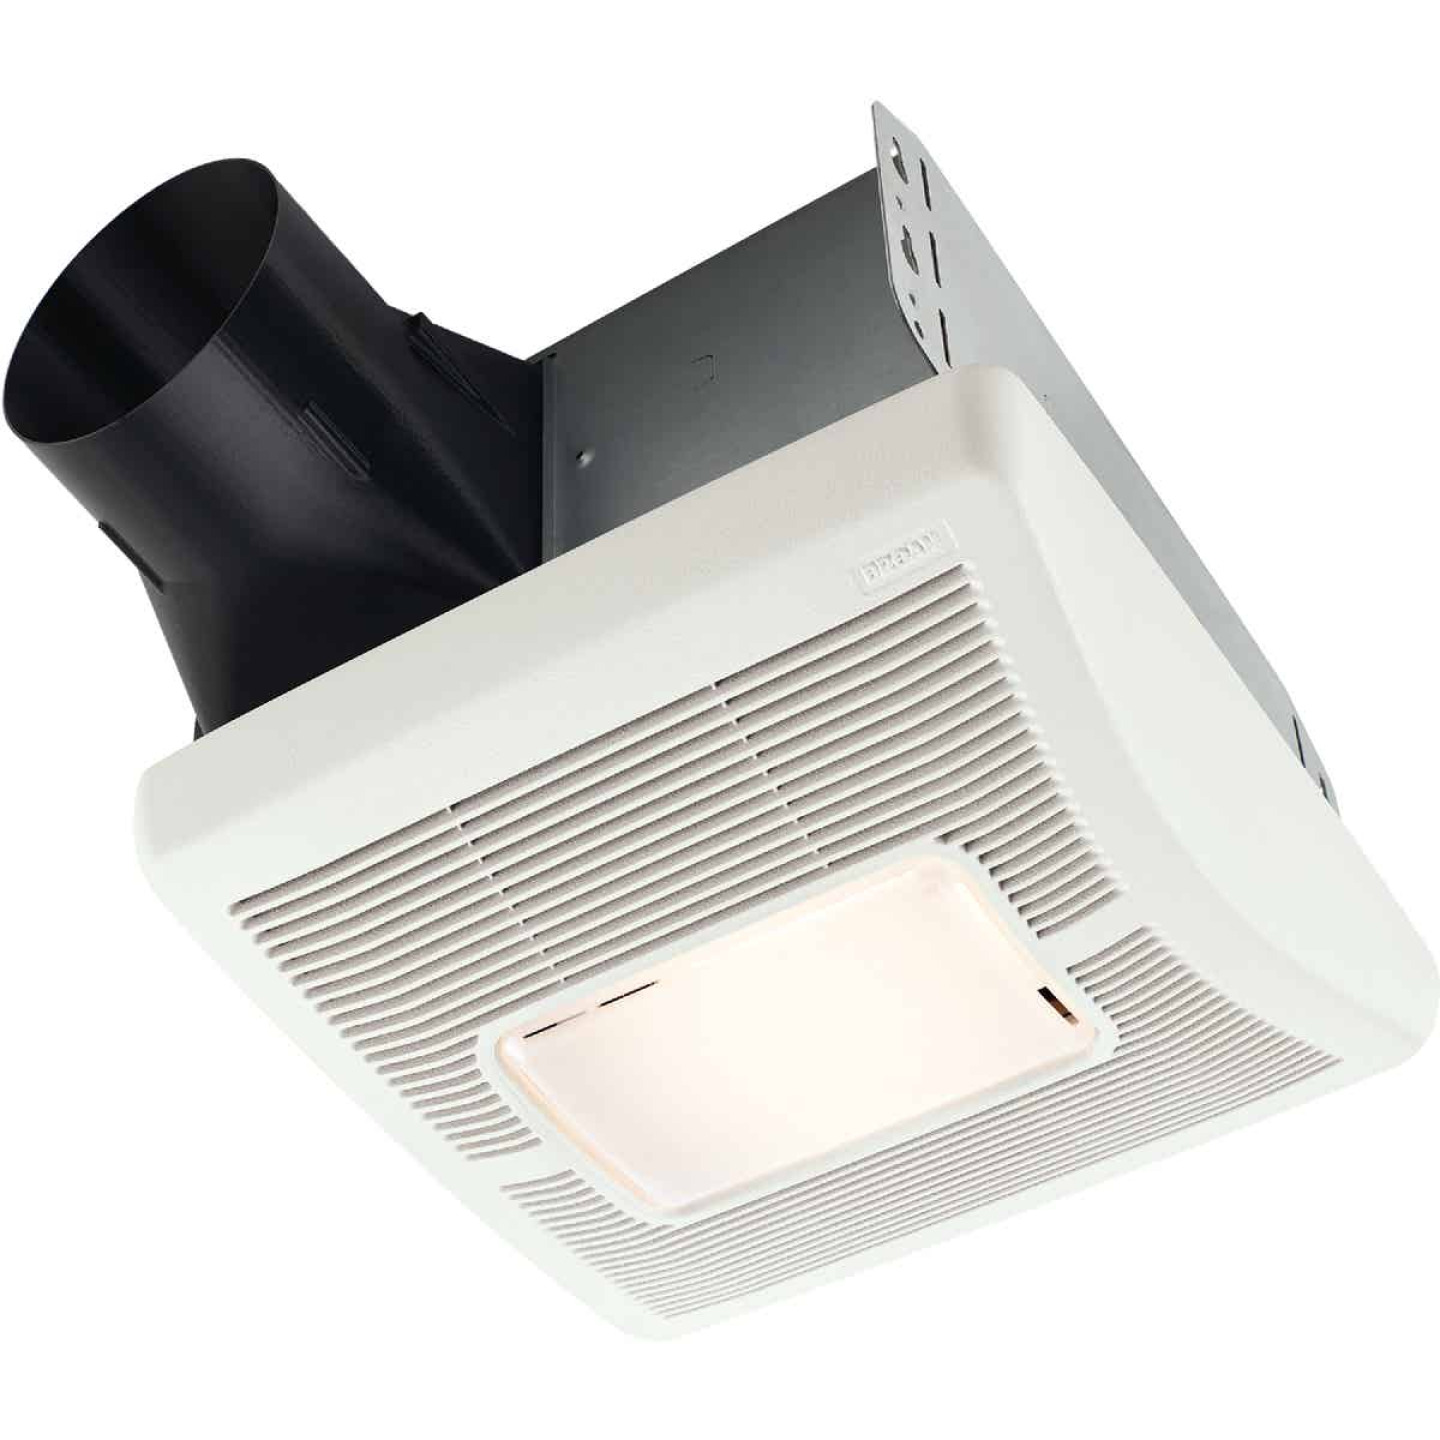 Broan 70 CFM 2.0 Sones 120V Bath Exhaust Fan Image 1